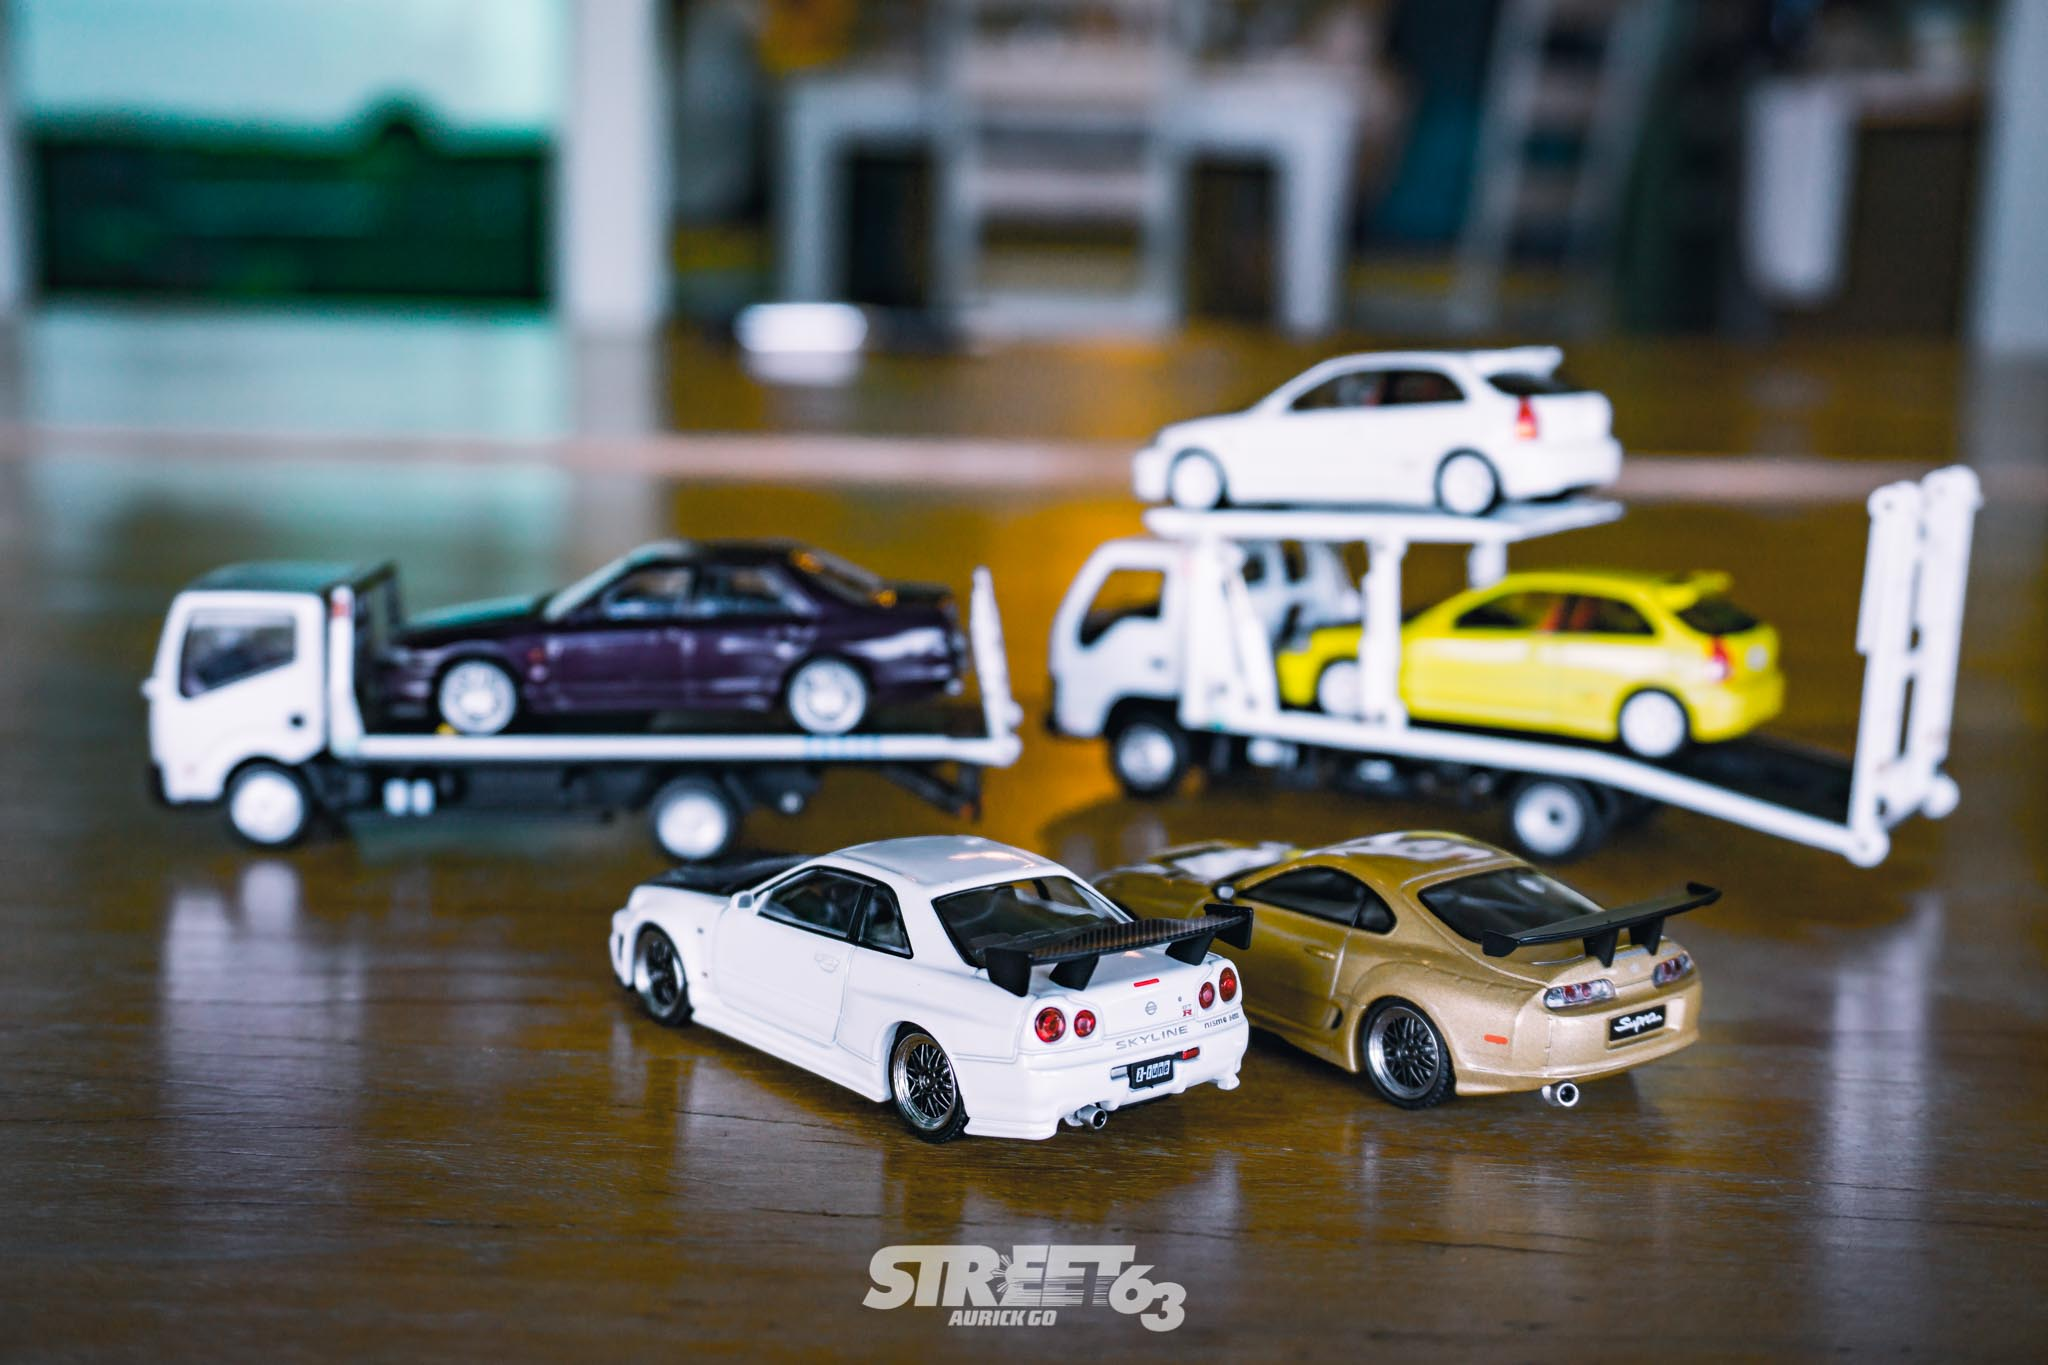 Mini63: The Street63 Diecast Collection 4